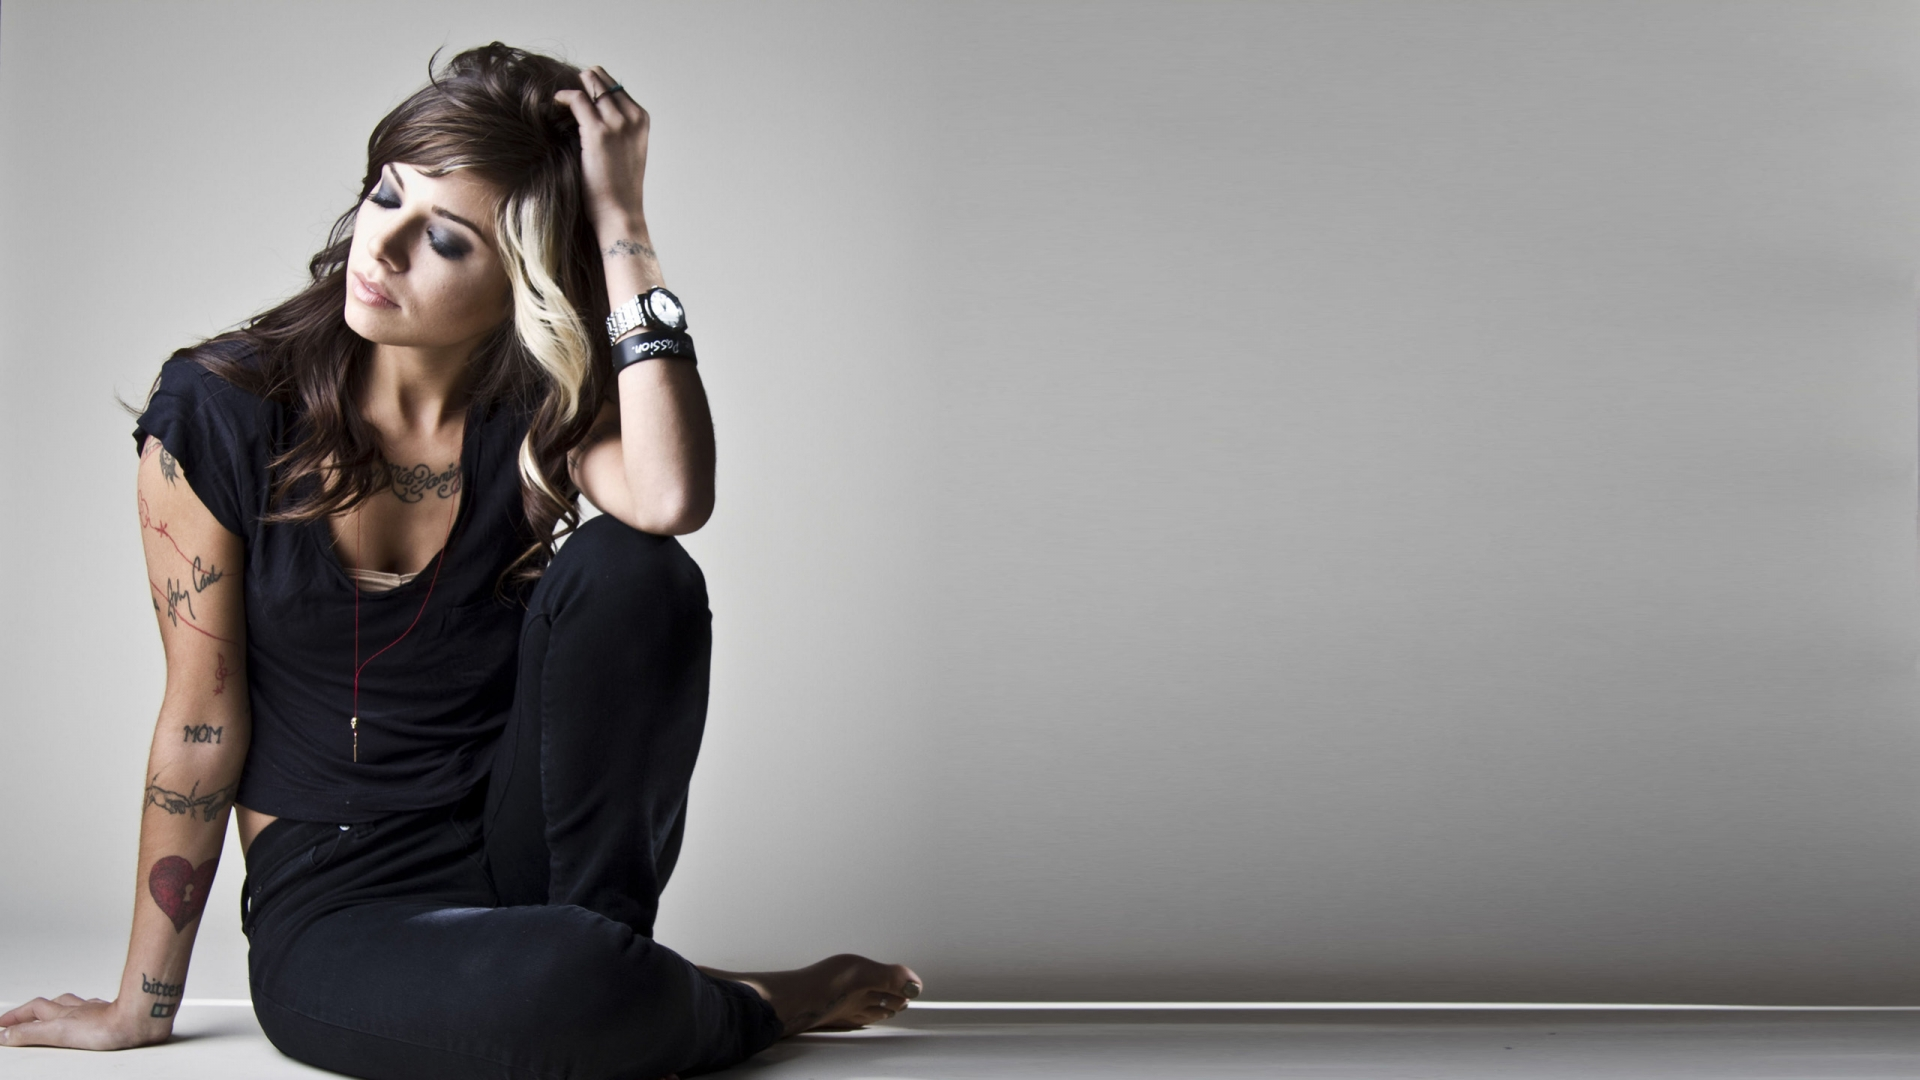 Christina Perri Singer Tattoos Download 1920x1080